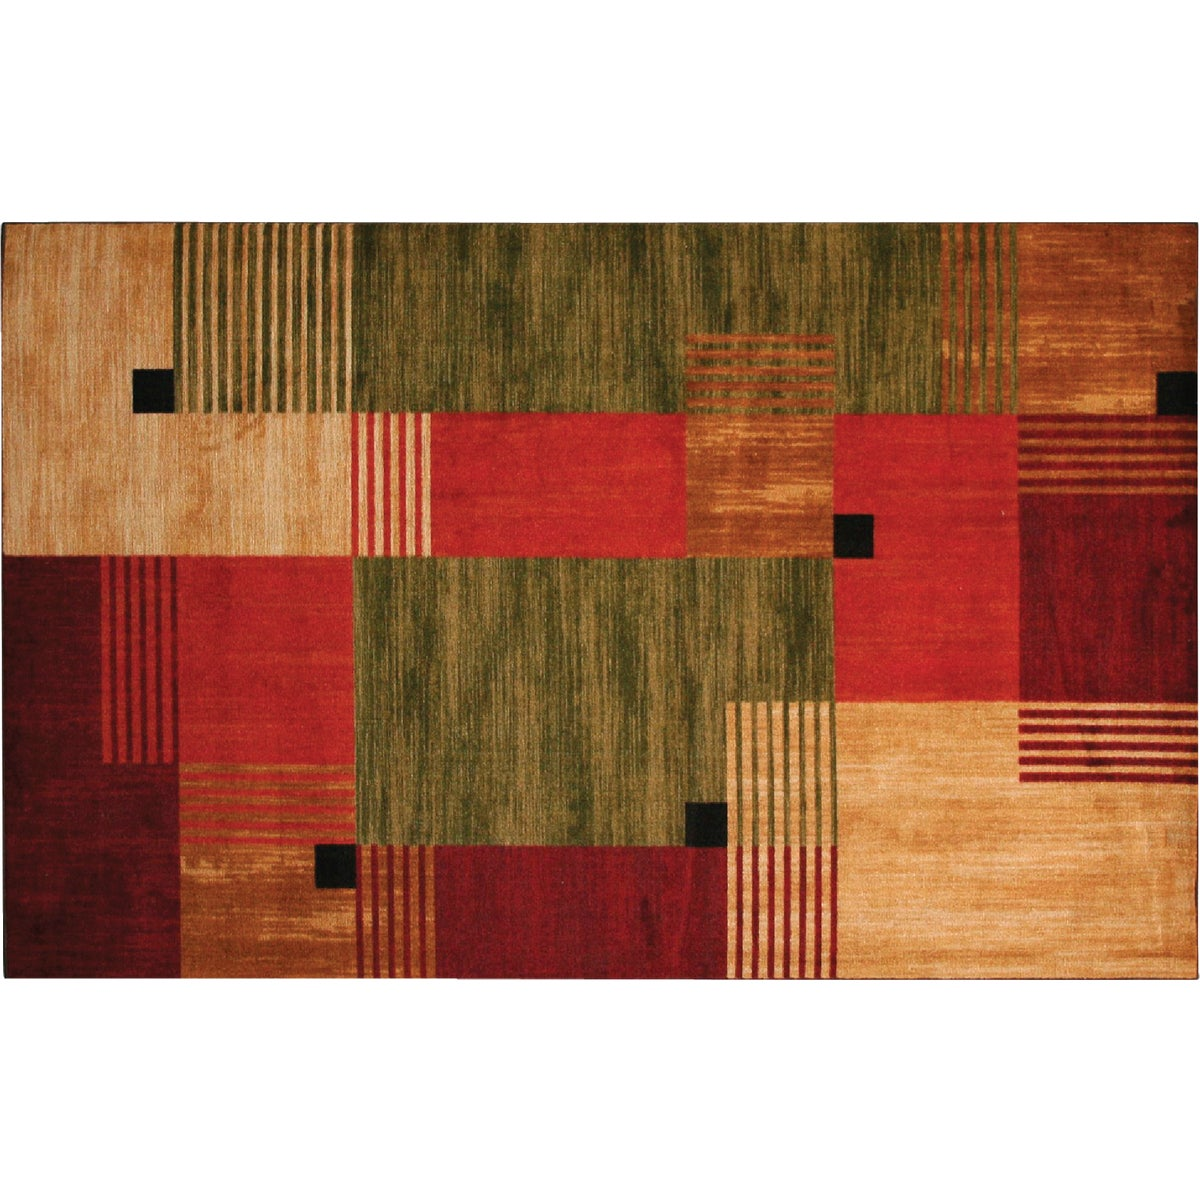 30X46 ALLIANCE PRINT RUG - 10276-416-30046 by Mohawk Home Products